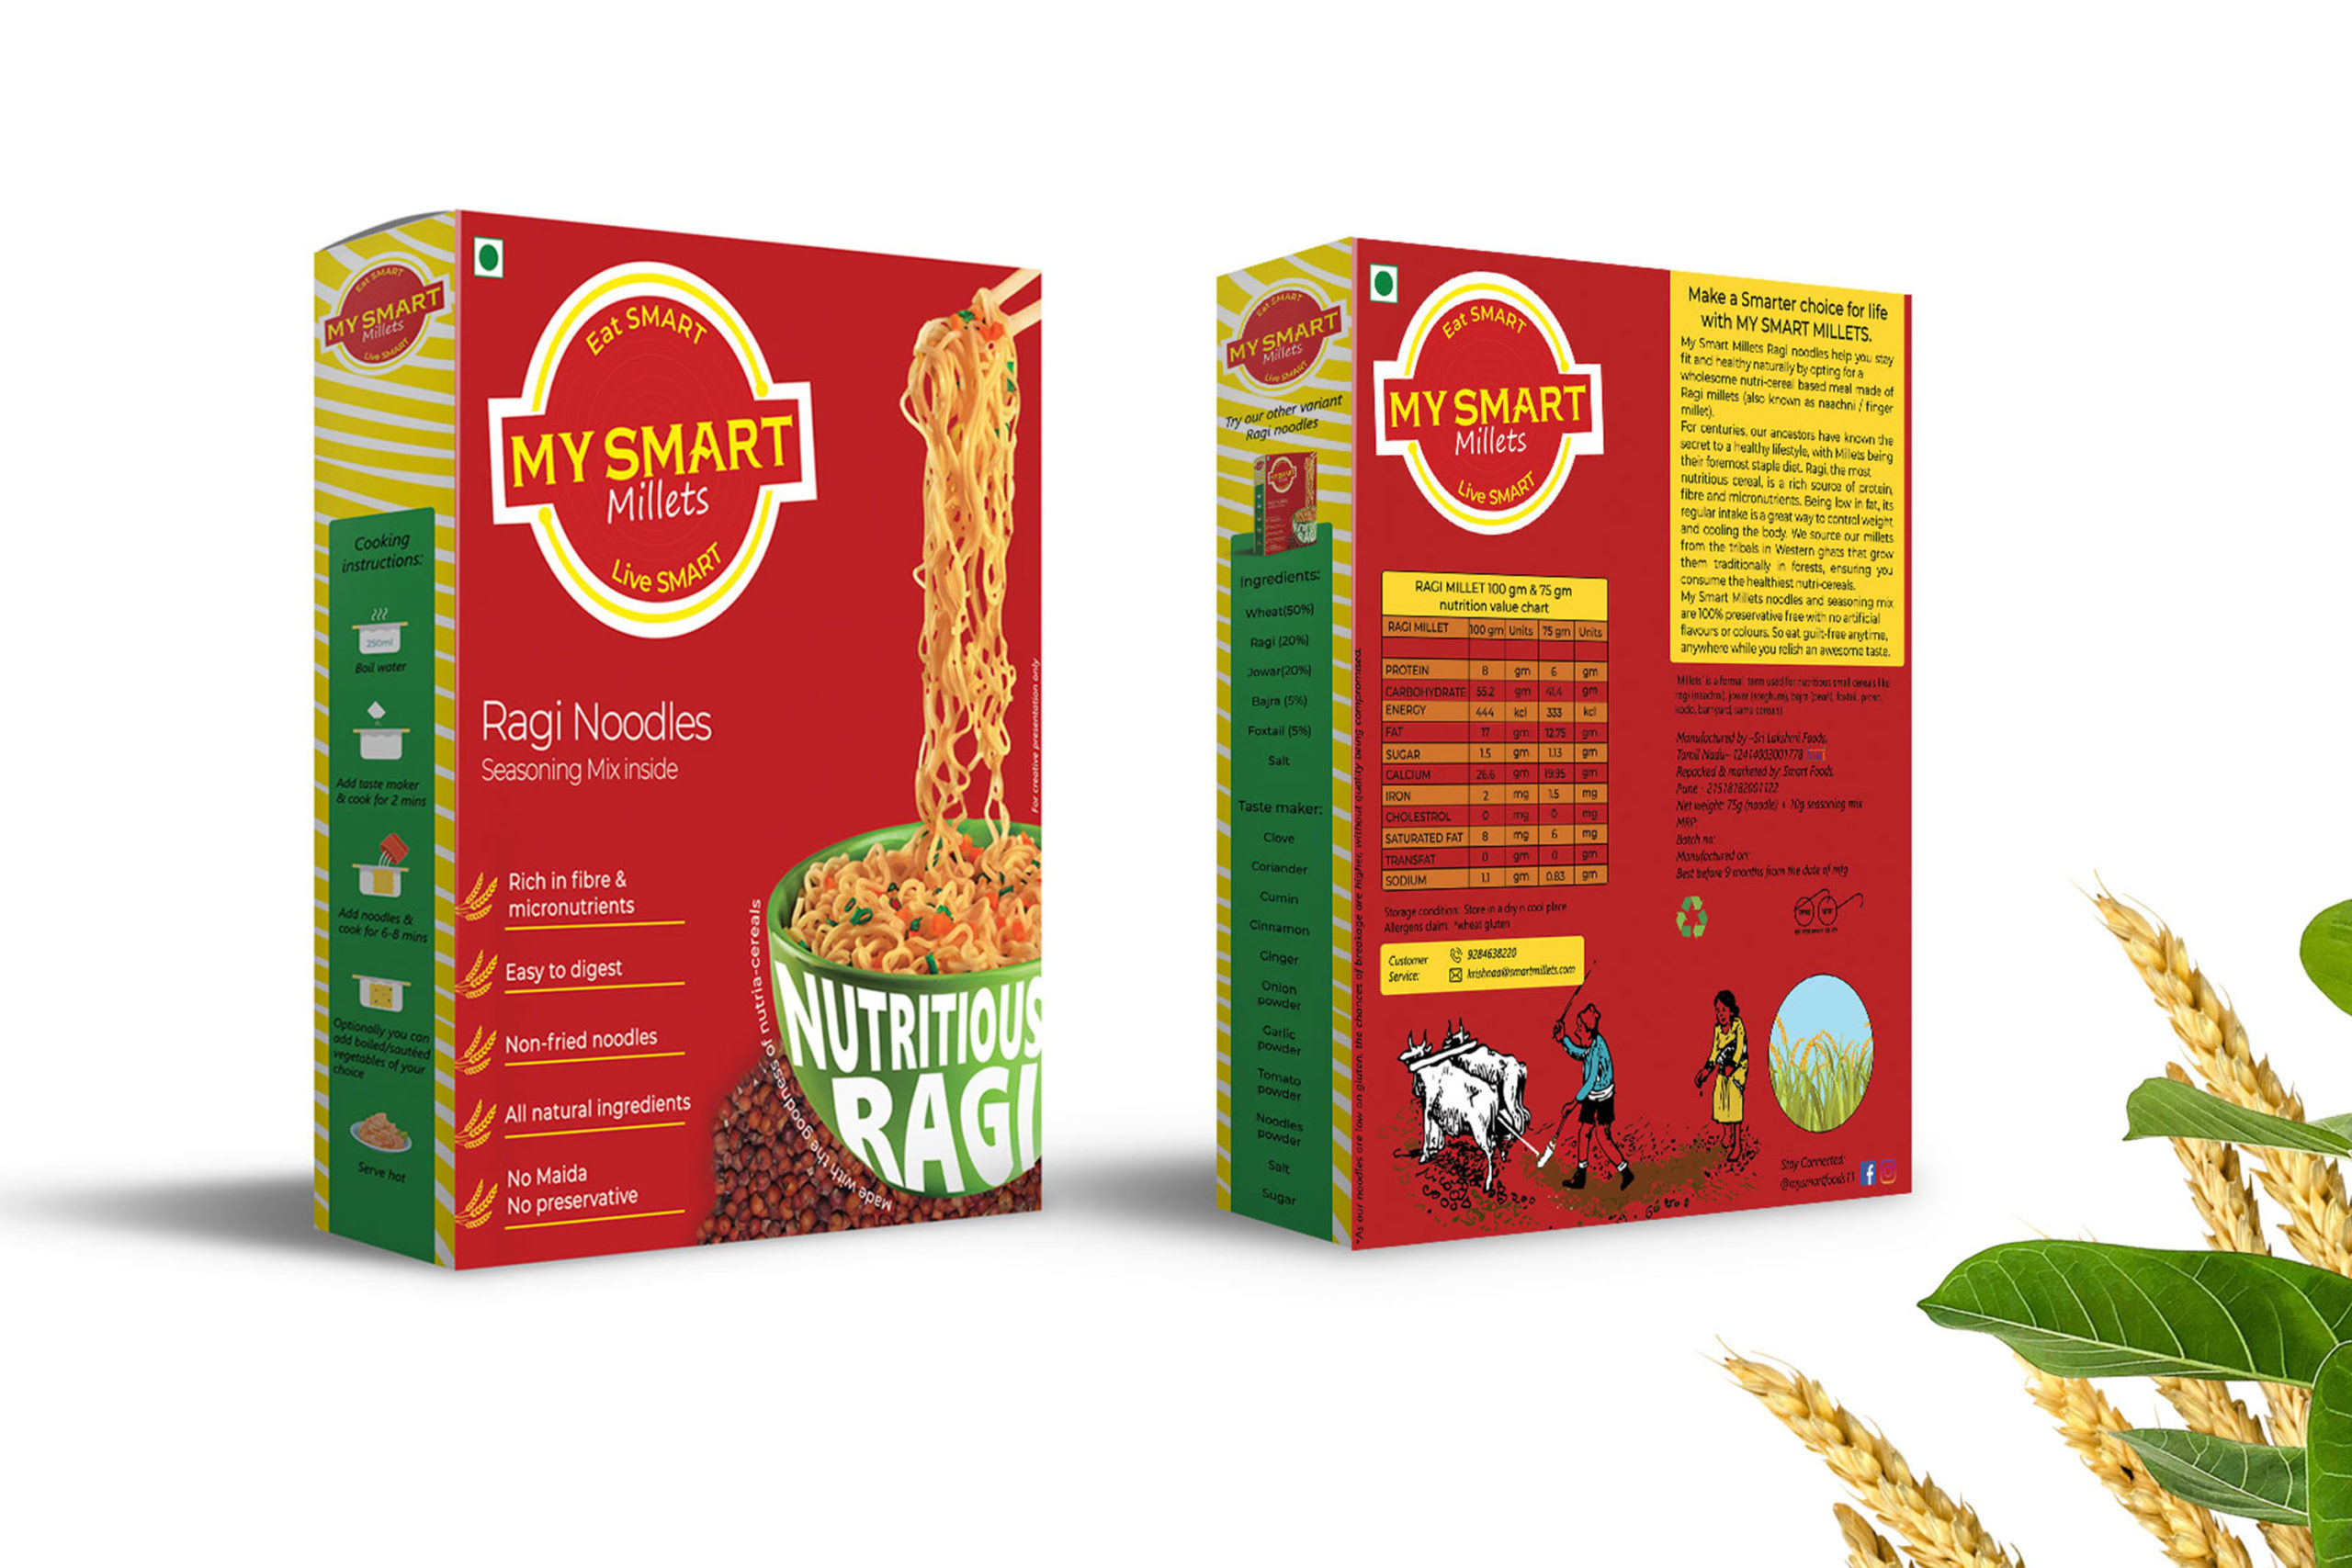 Smart Millets - Branding & Packaging